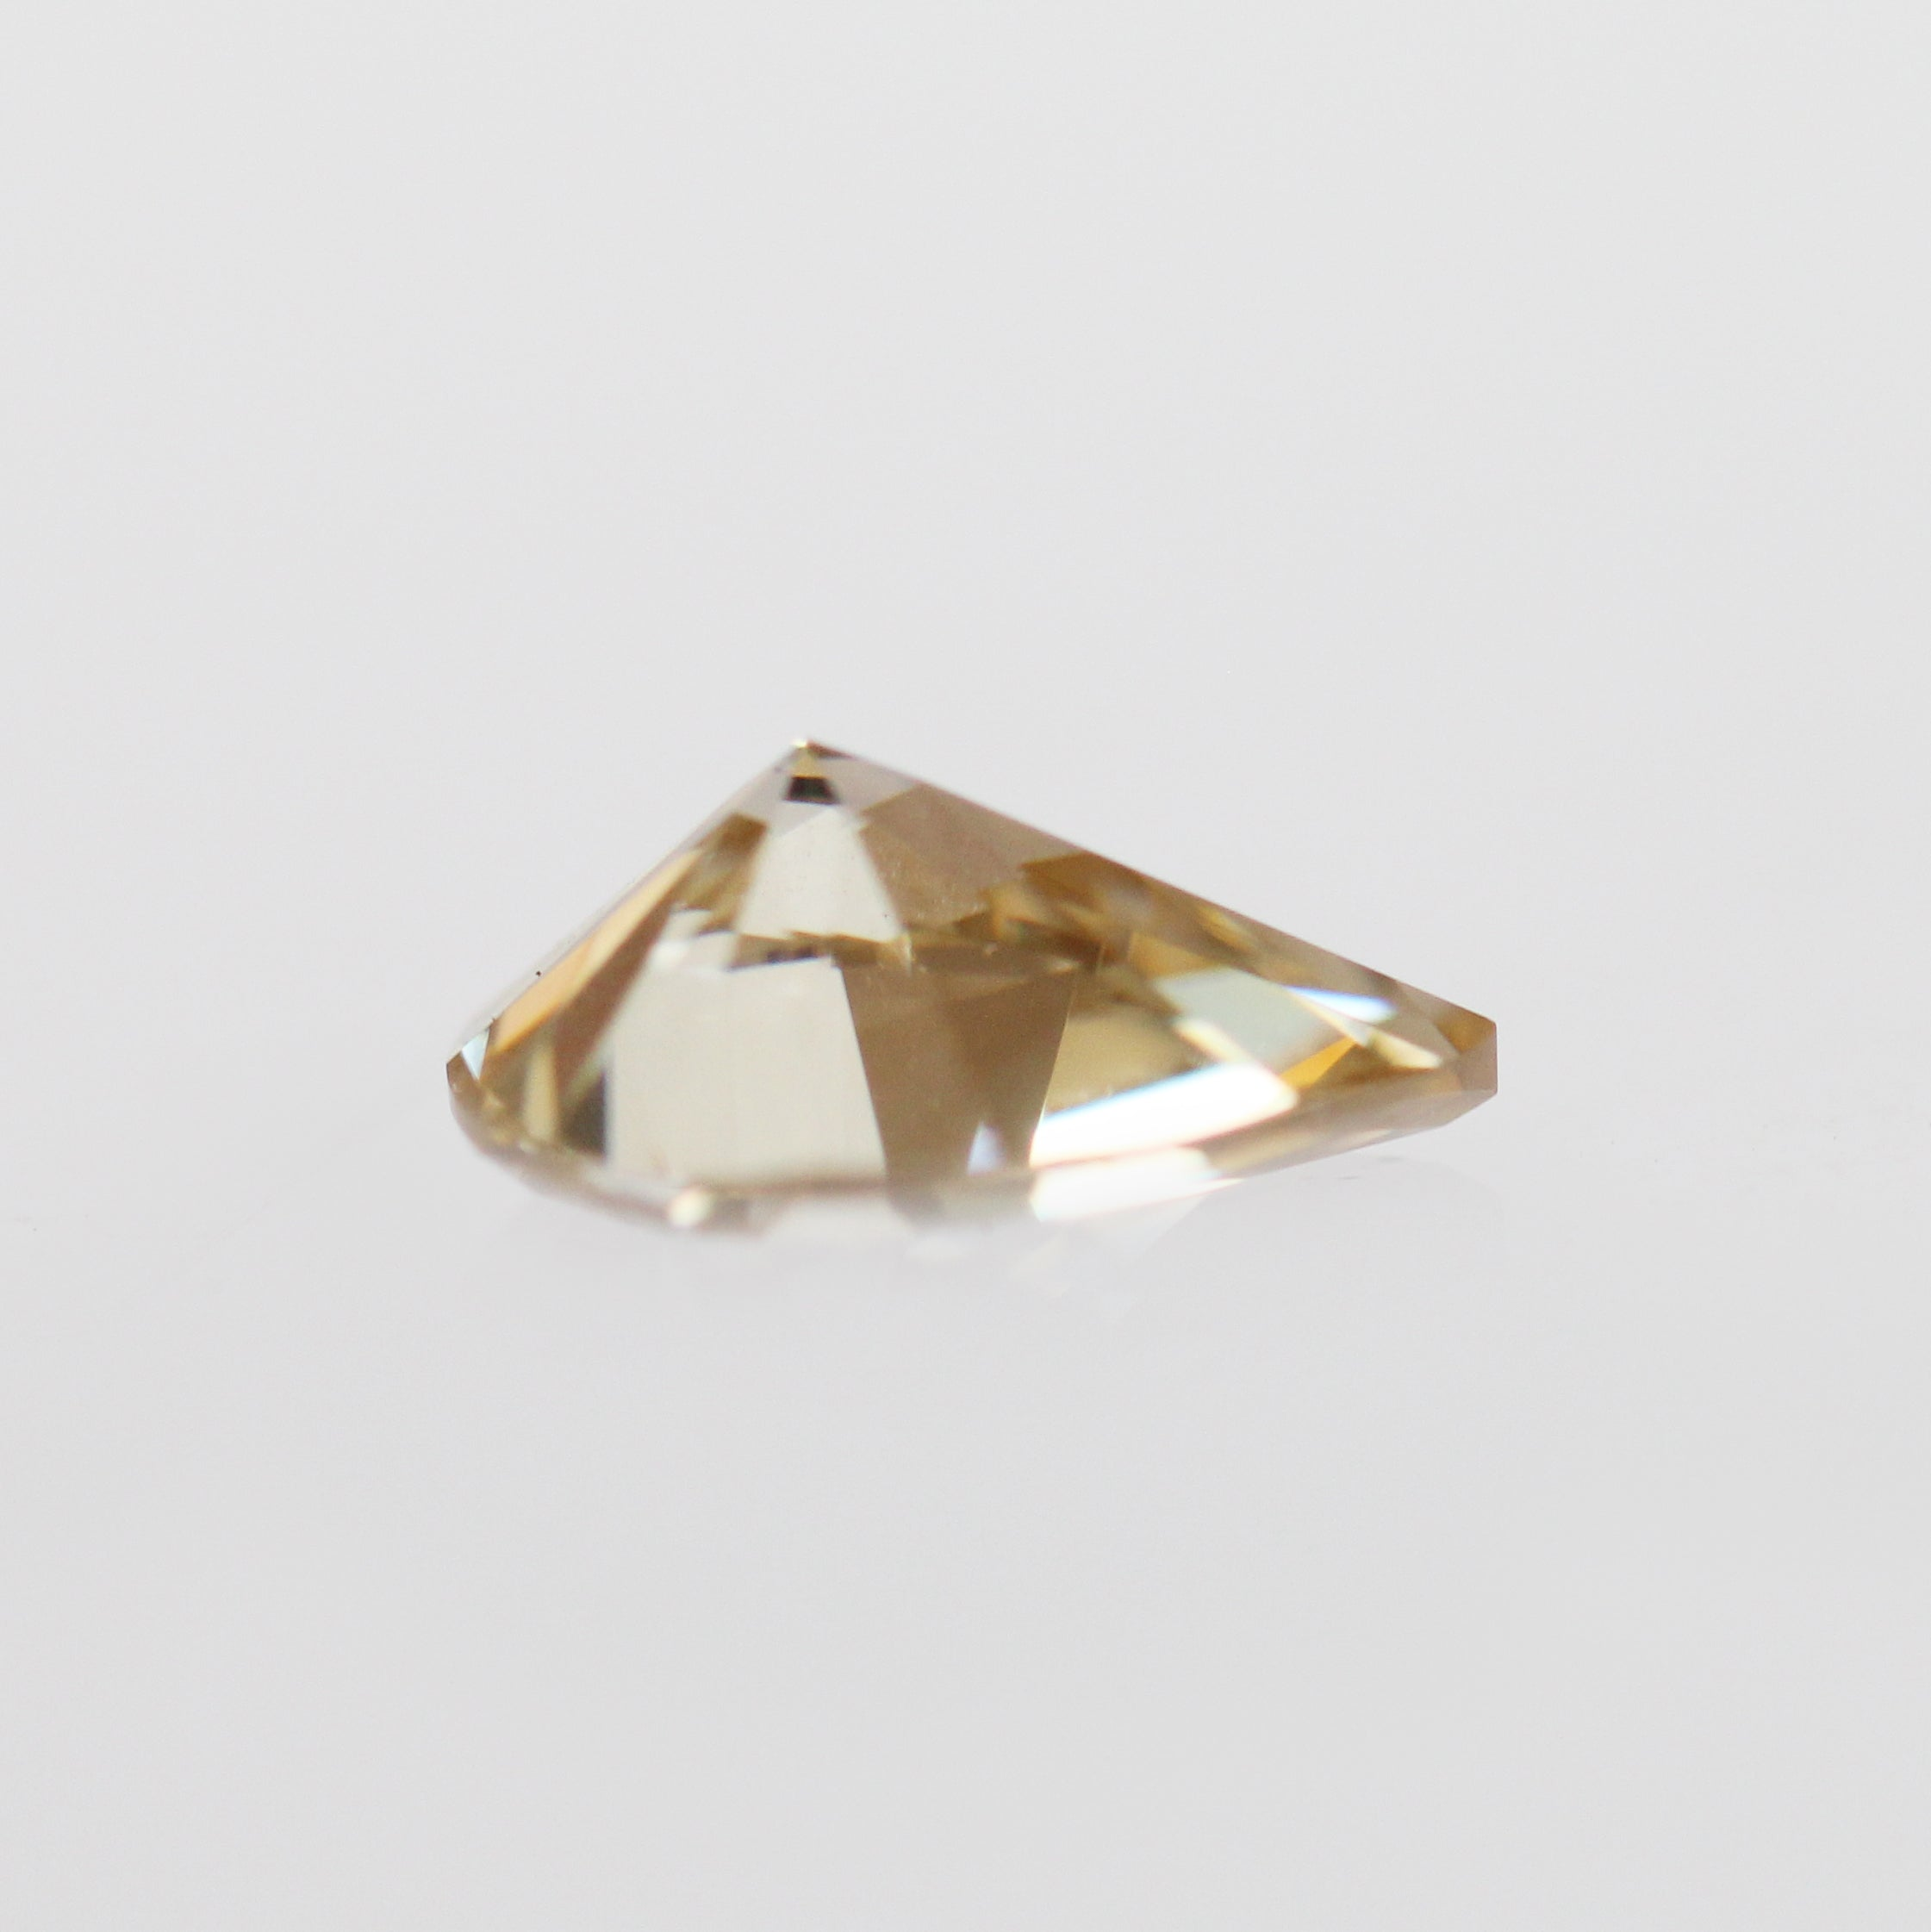 1.75 Carat Pear Moissanite- Inventory Code PBMOI175 - Celestial Diamonds ® by Midwinter Co.